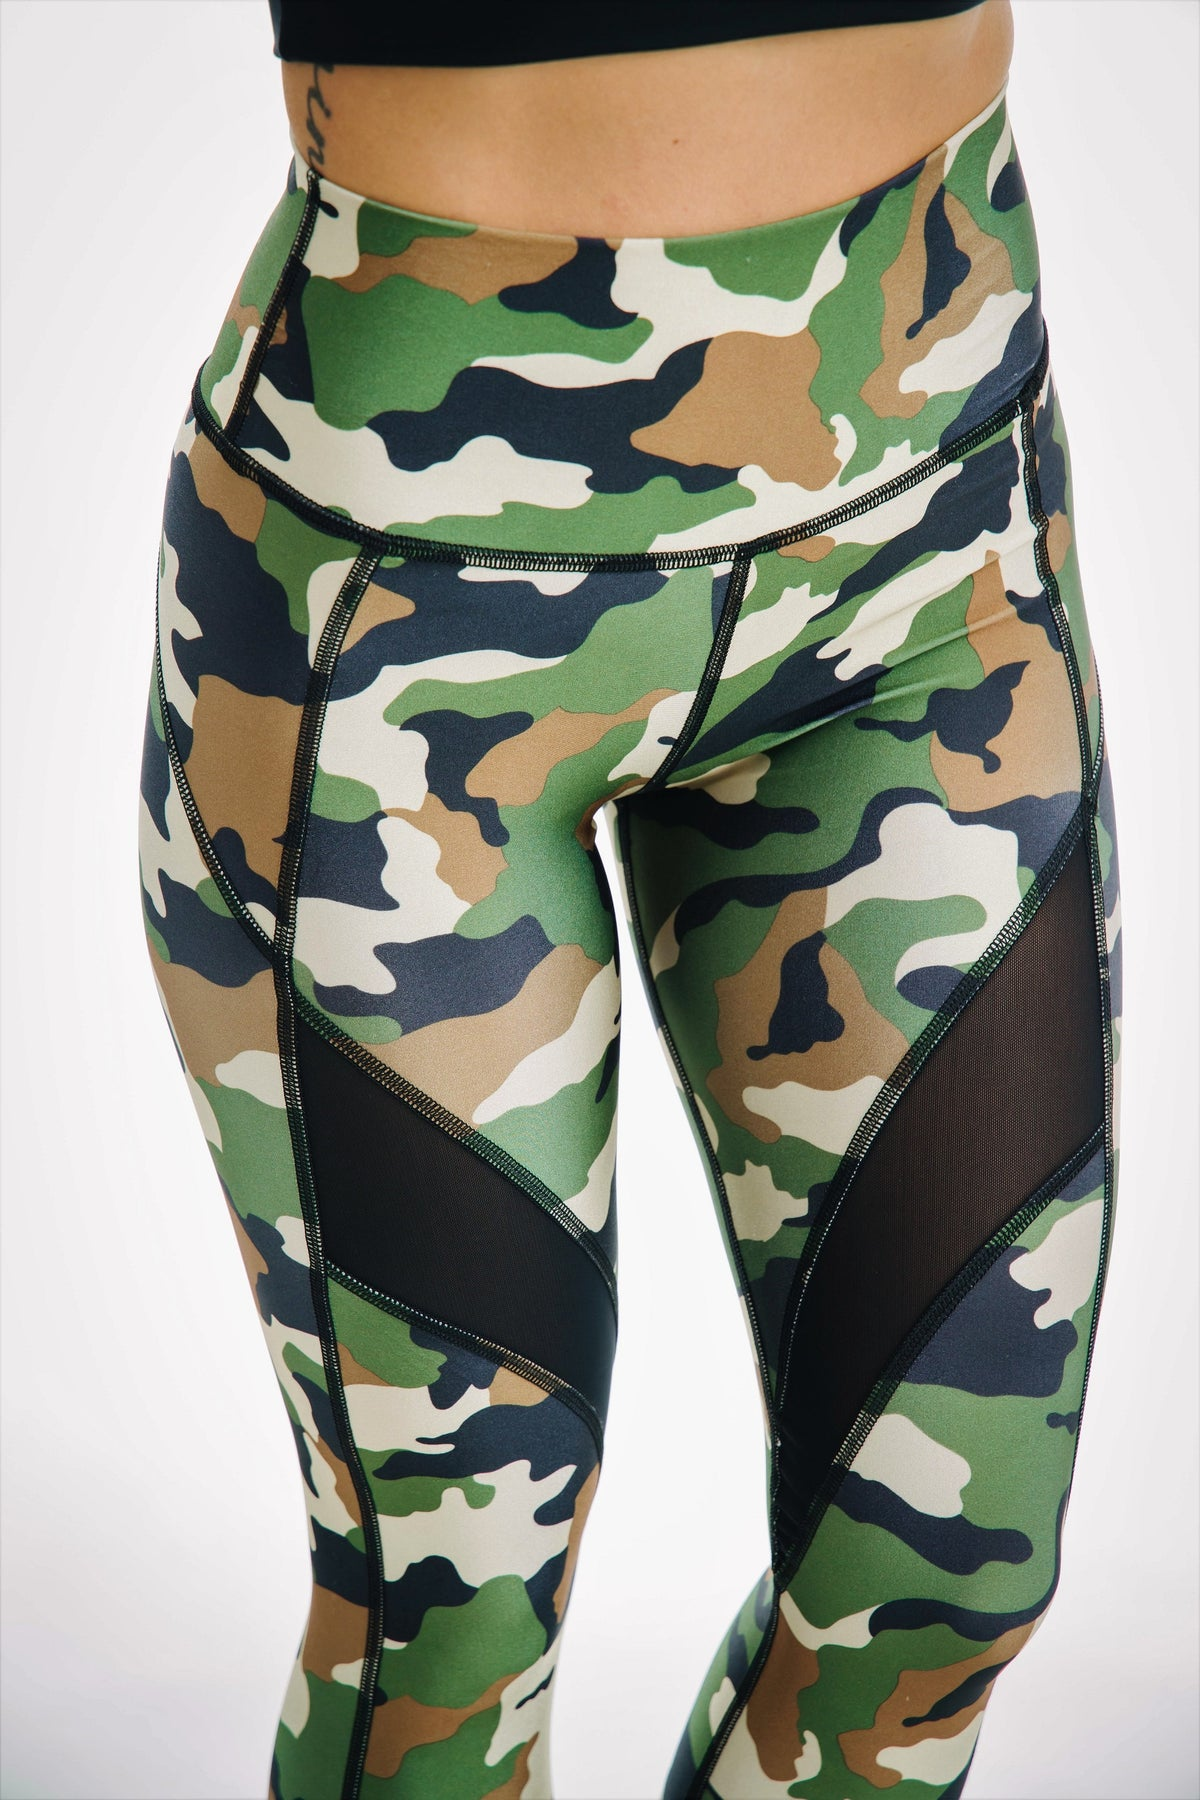 camo high waisted mesh leggings 7/8